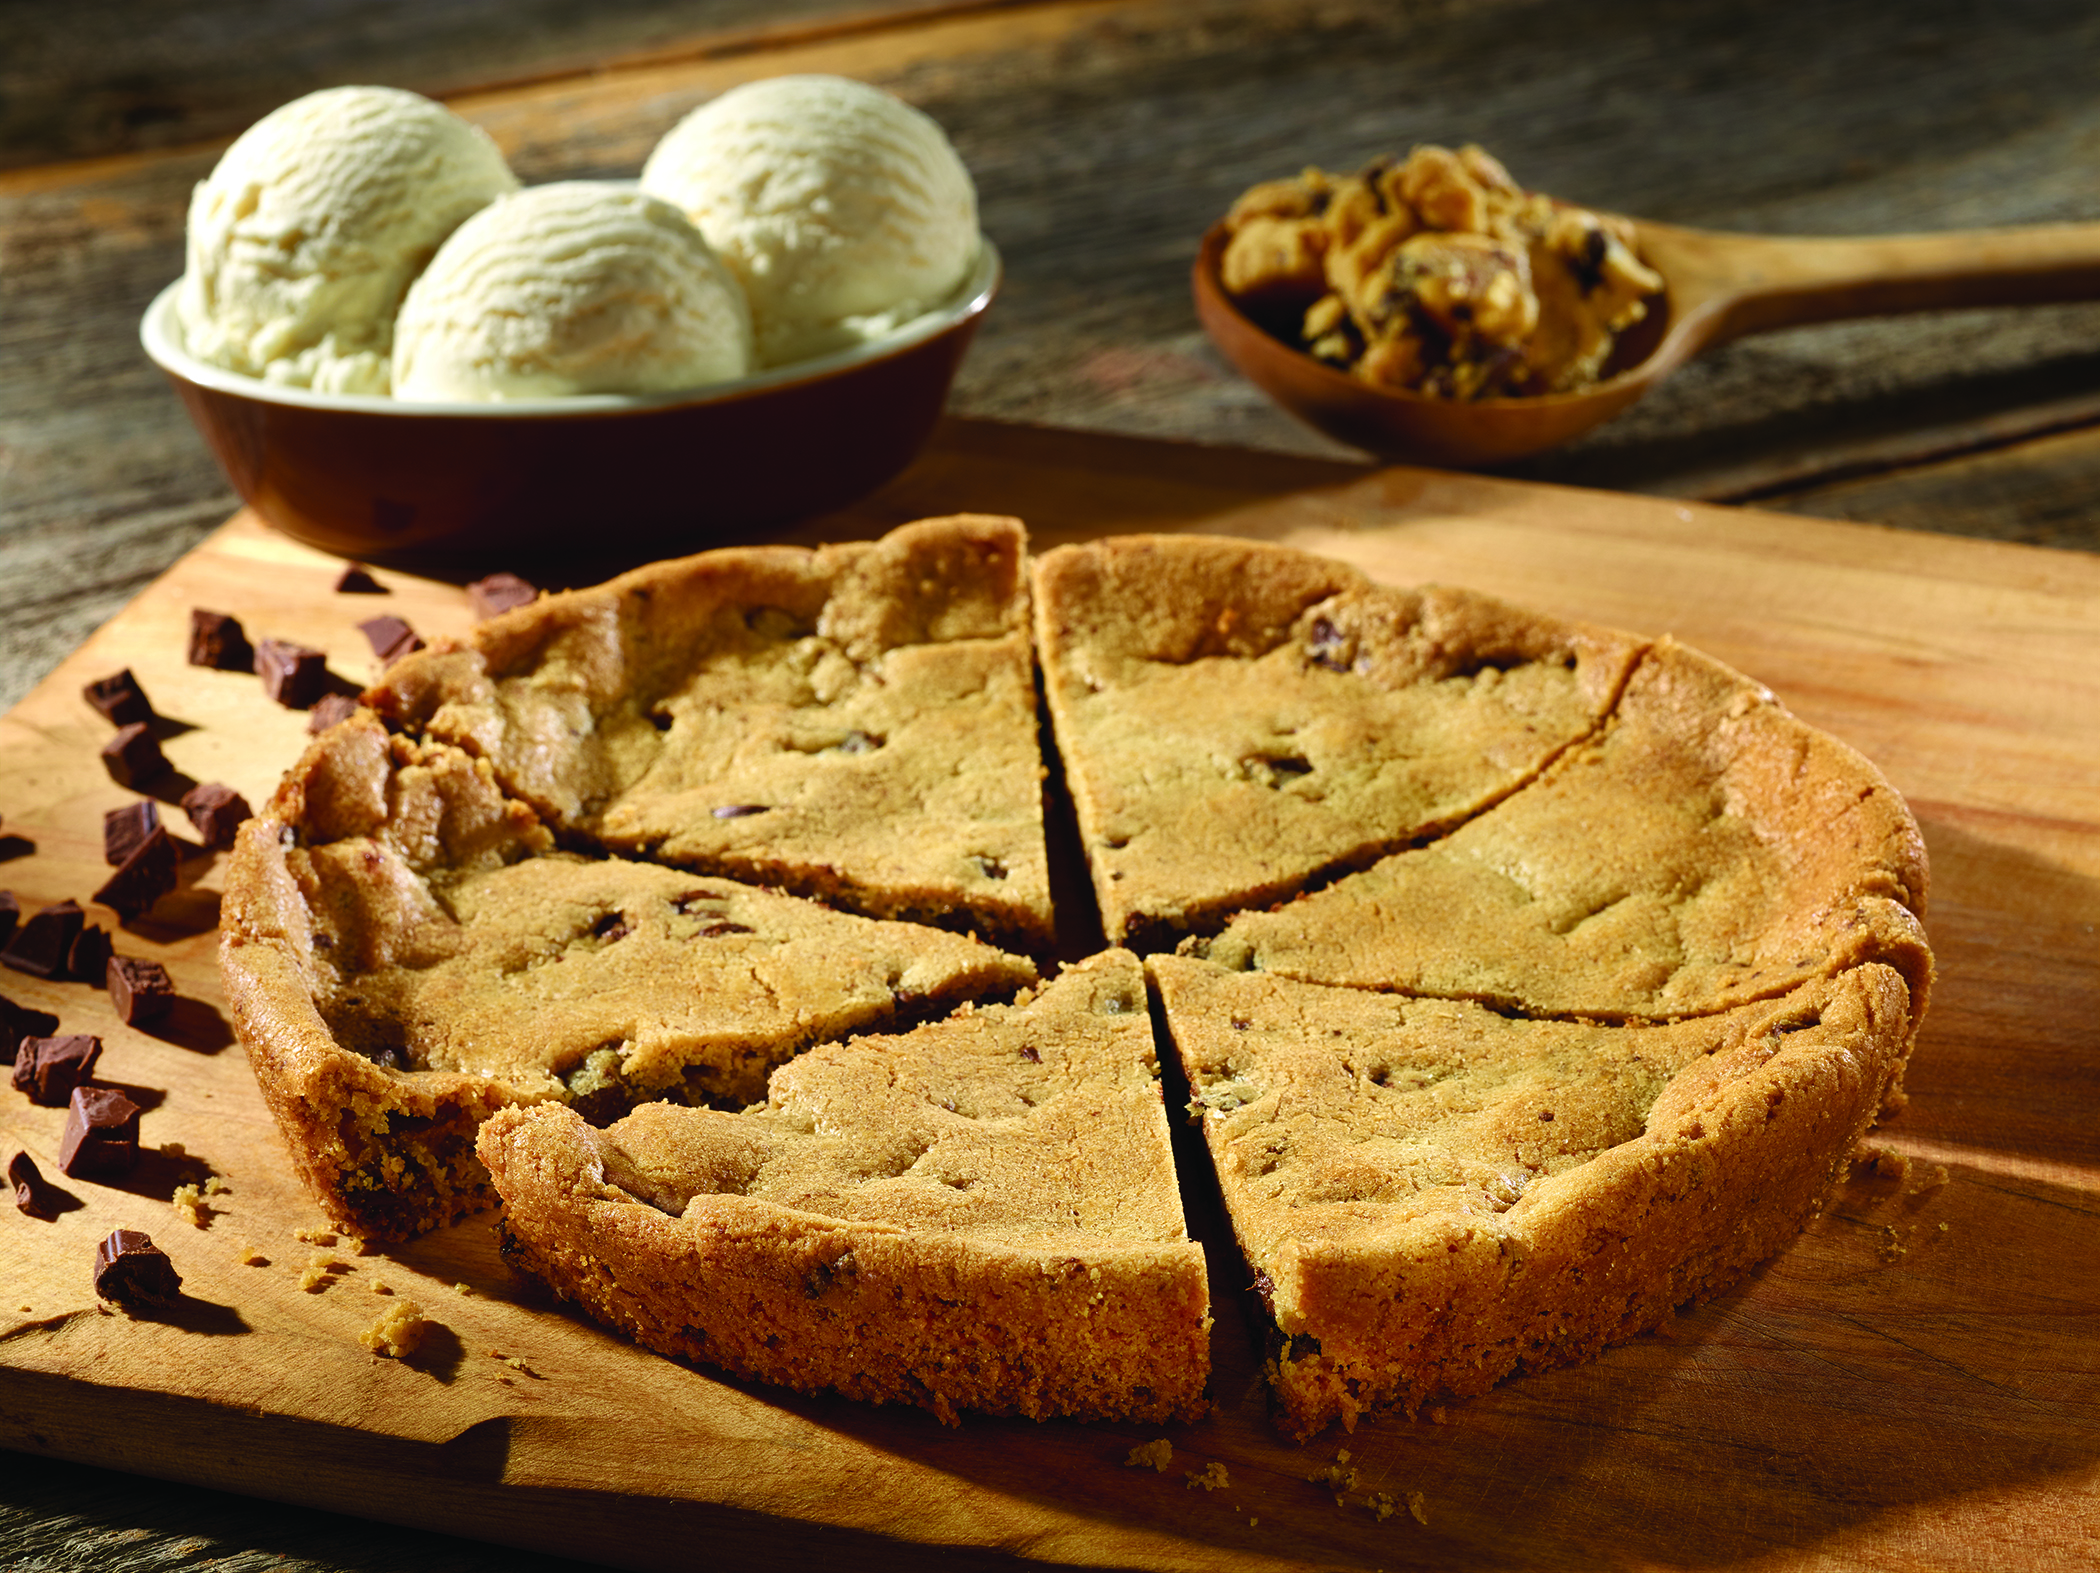 dessert-big cookie2 300dpi.jpg